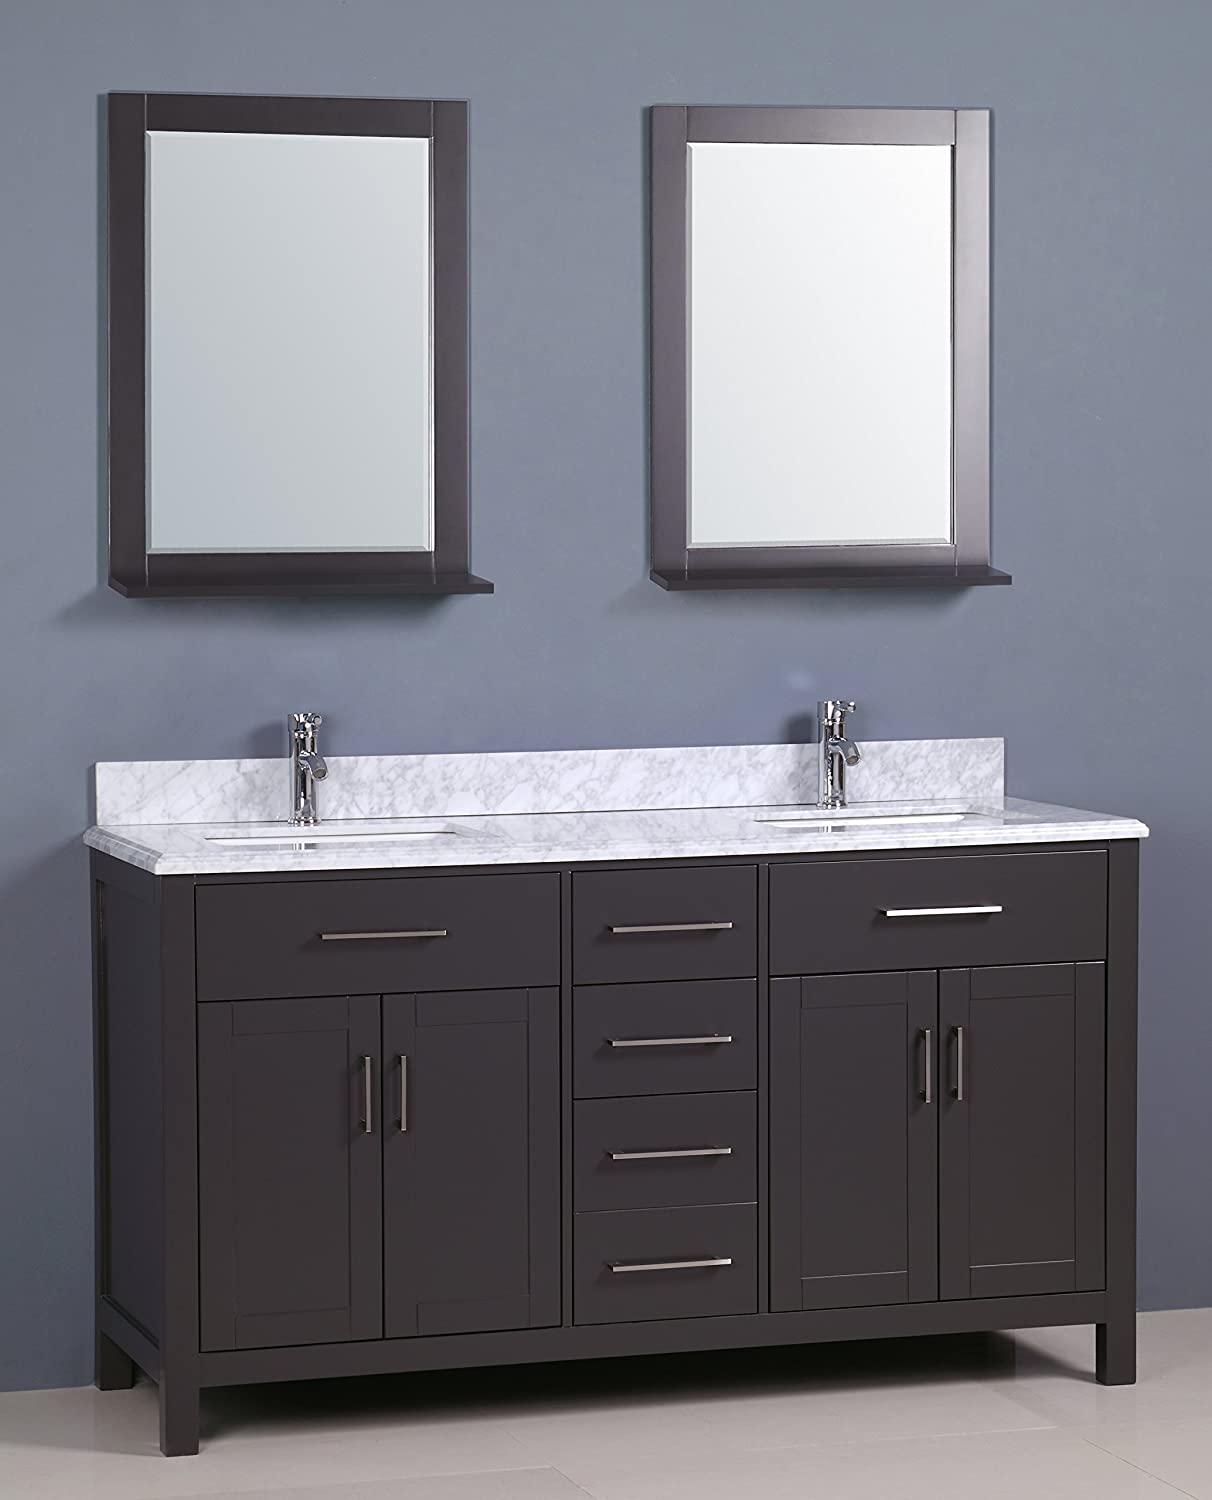 Phenomenal Golden Elite 60 Carrera Bathroom Vanity Grey Amazon Com Interior Design Ideas Pimpapslepicentreinfo